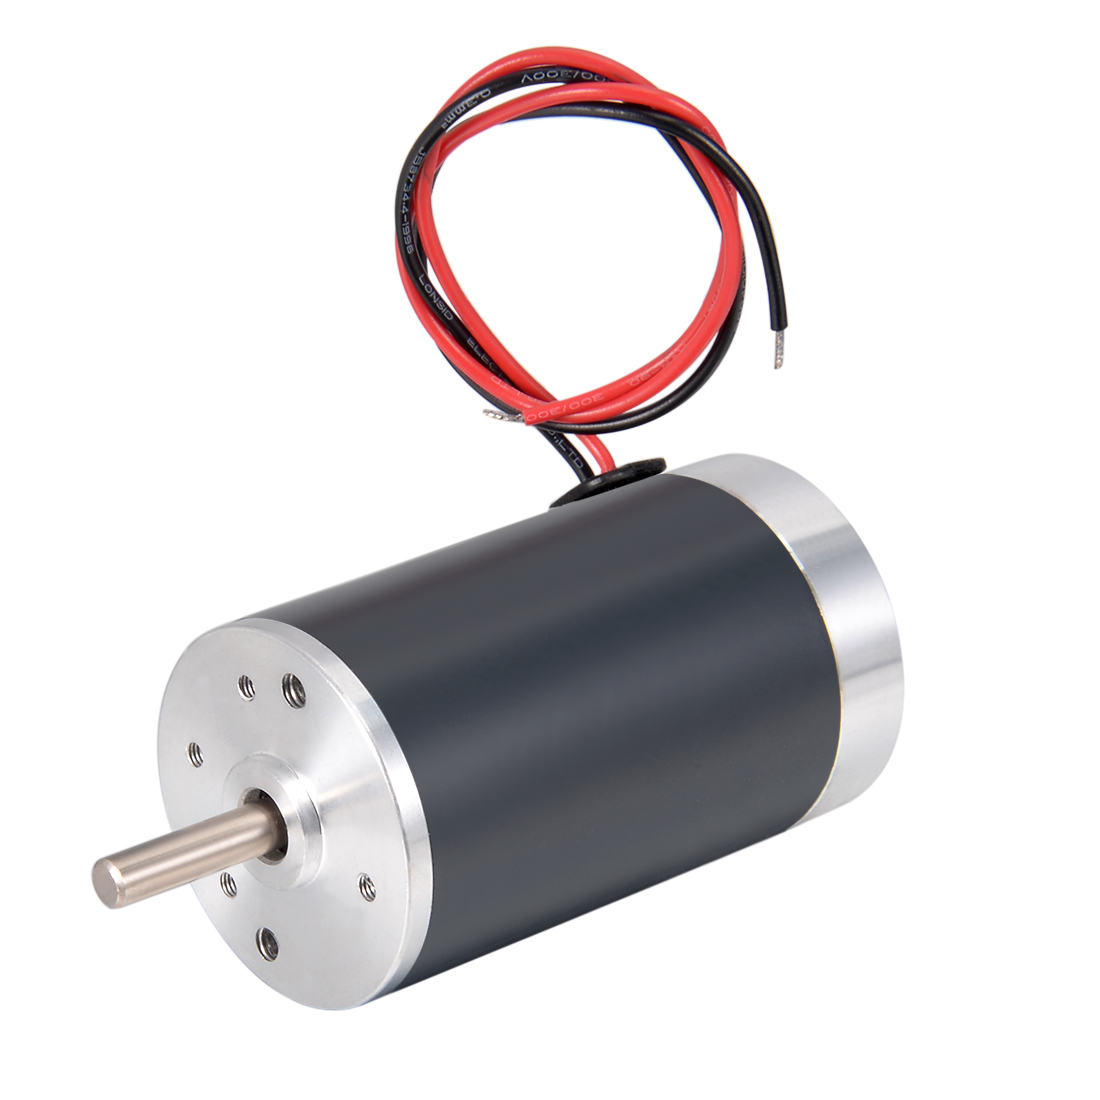 300G.cm Torque Brushed Electric Motor 24V DC 3000RPM High Speed